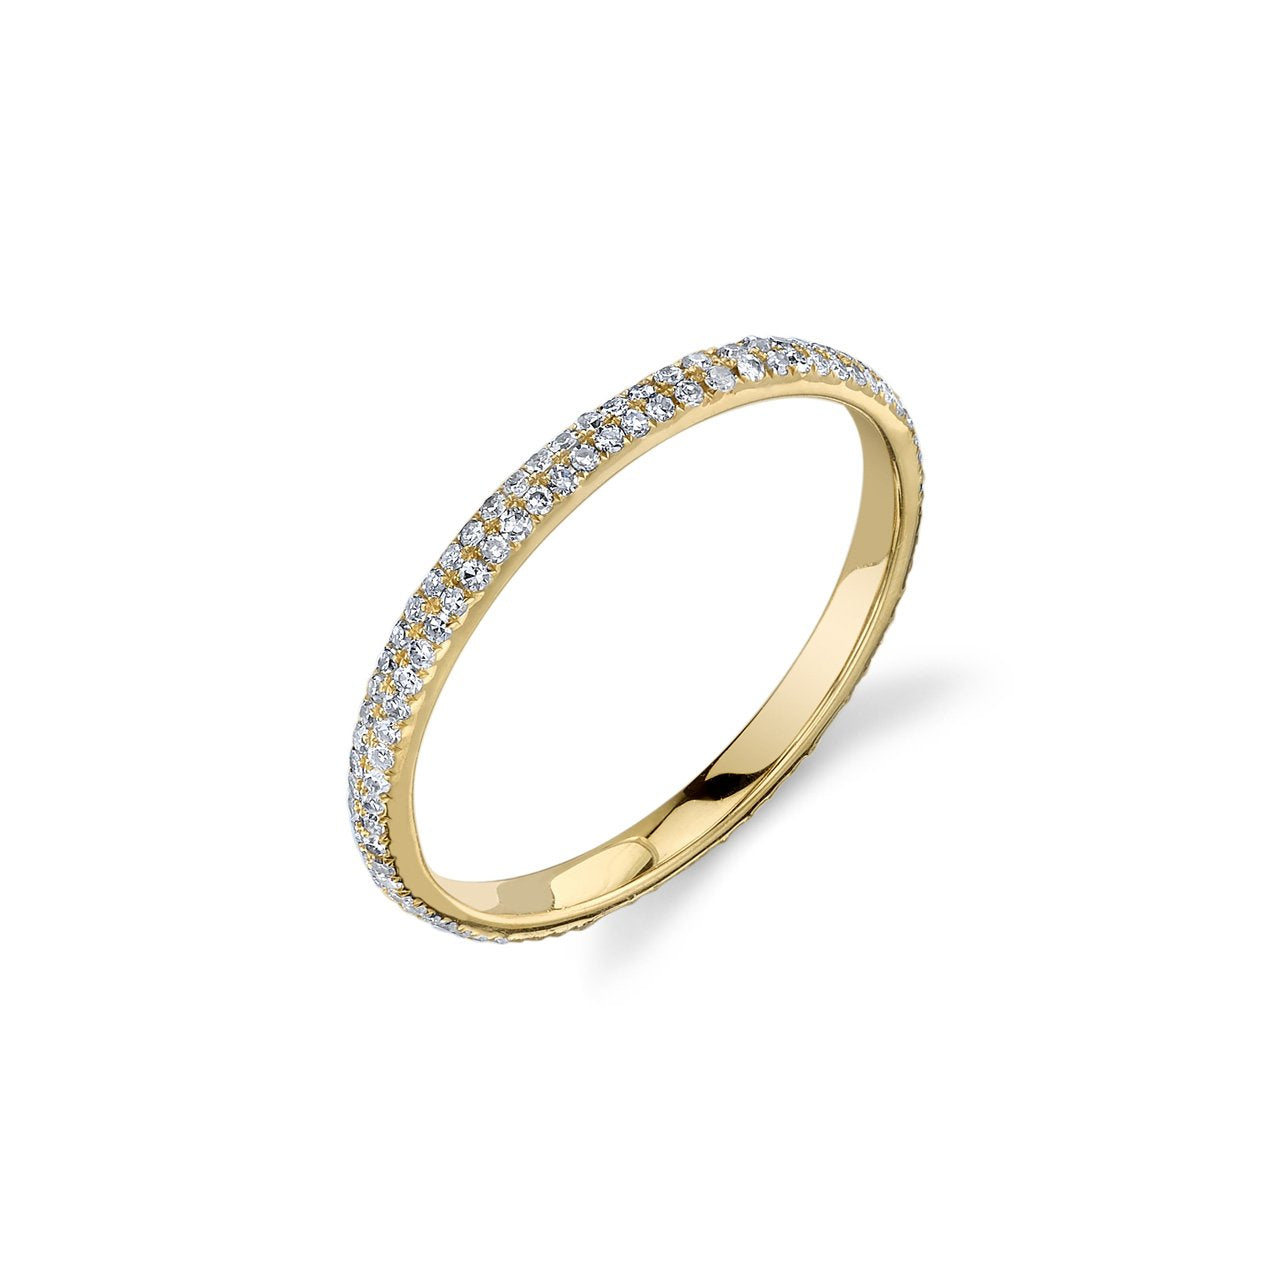 Gabriela Artigas Axel Ring with White Pave